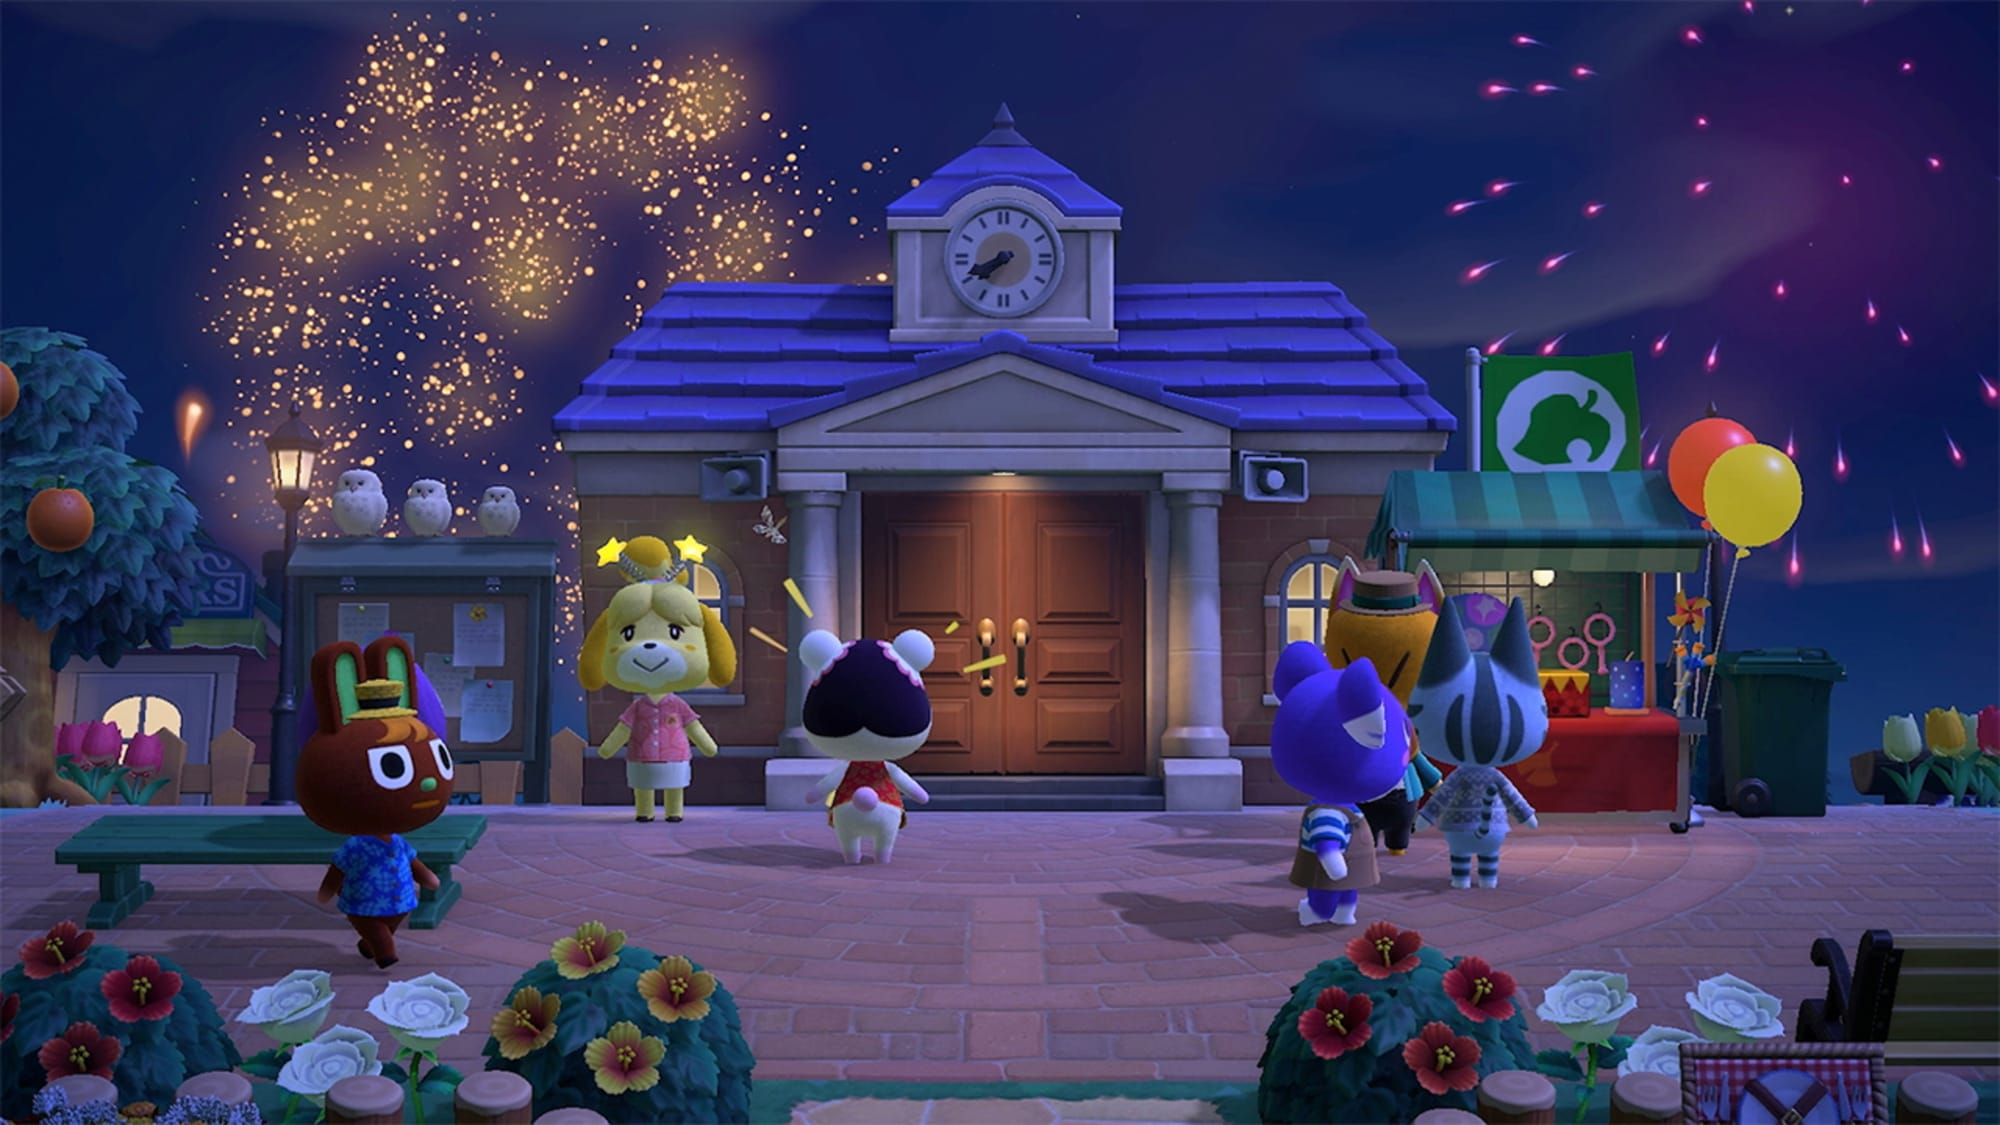 Animal Crossing New Horizons Villager Birthdays In August